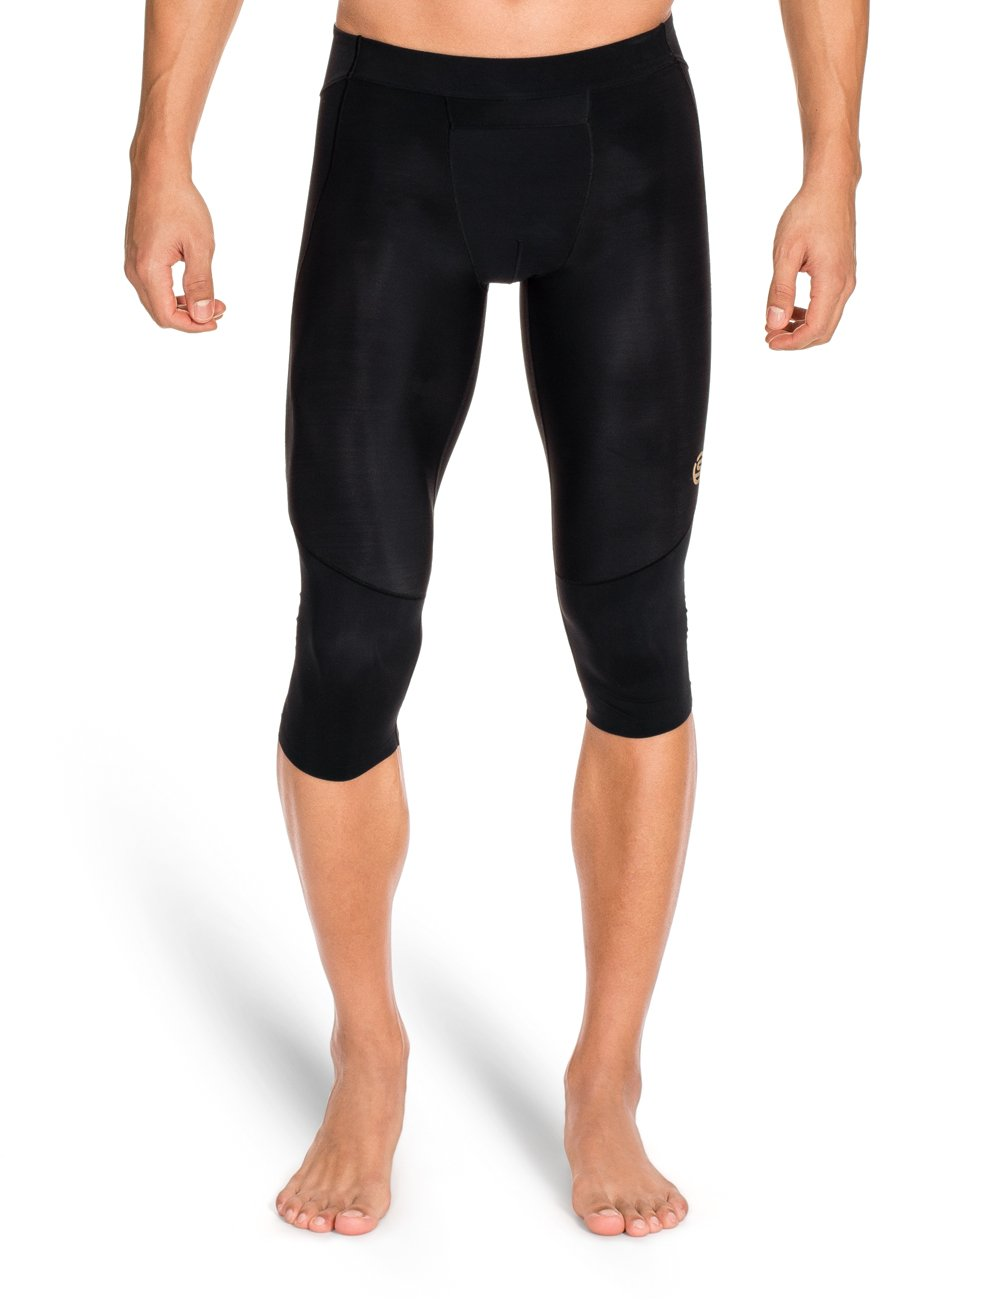 Skins Men's A400 Compression 3/4 Tights, Black, Small